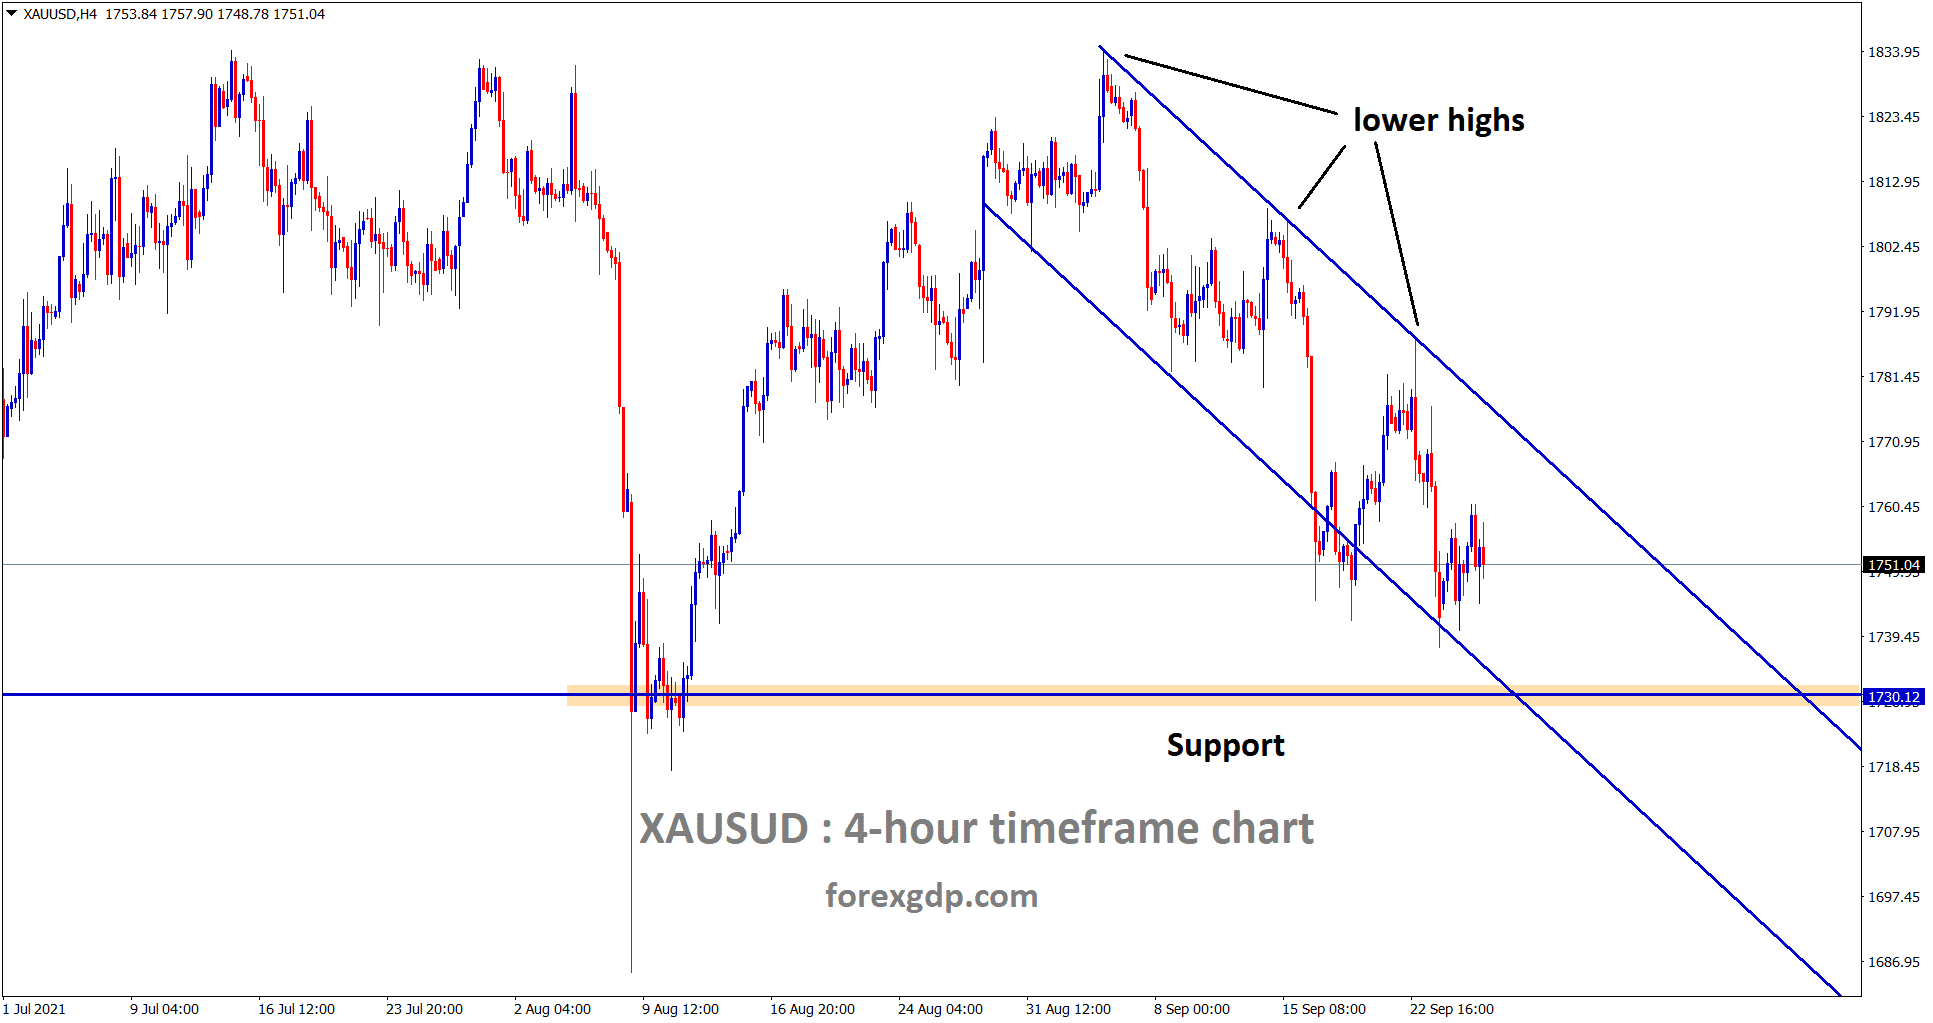 Gold is still moving in a Descending channel for a long time heading towards the support